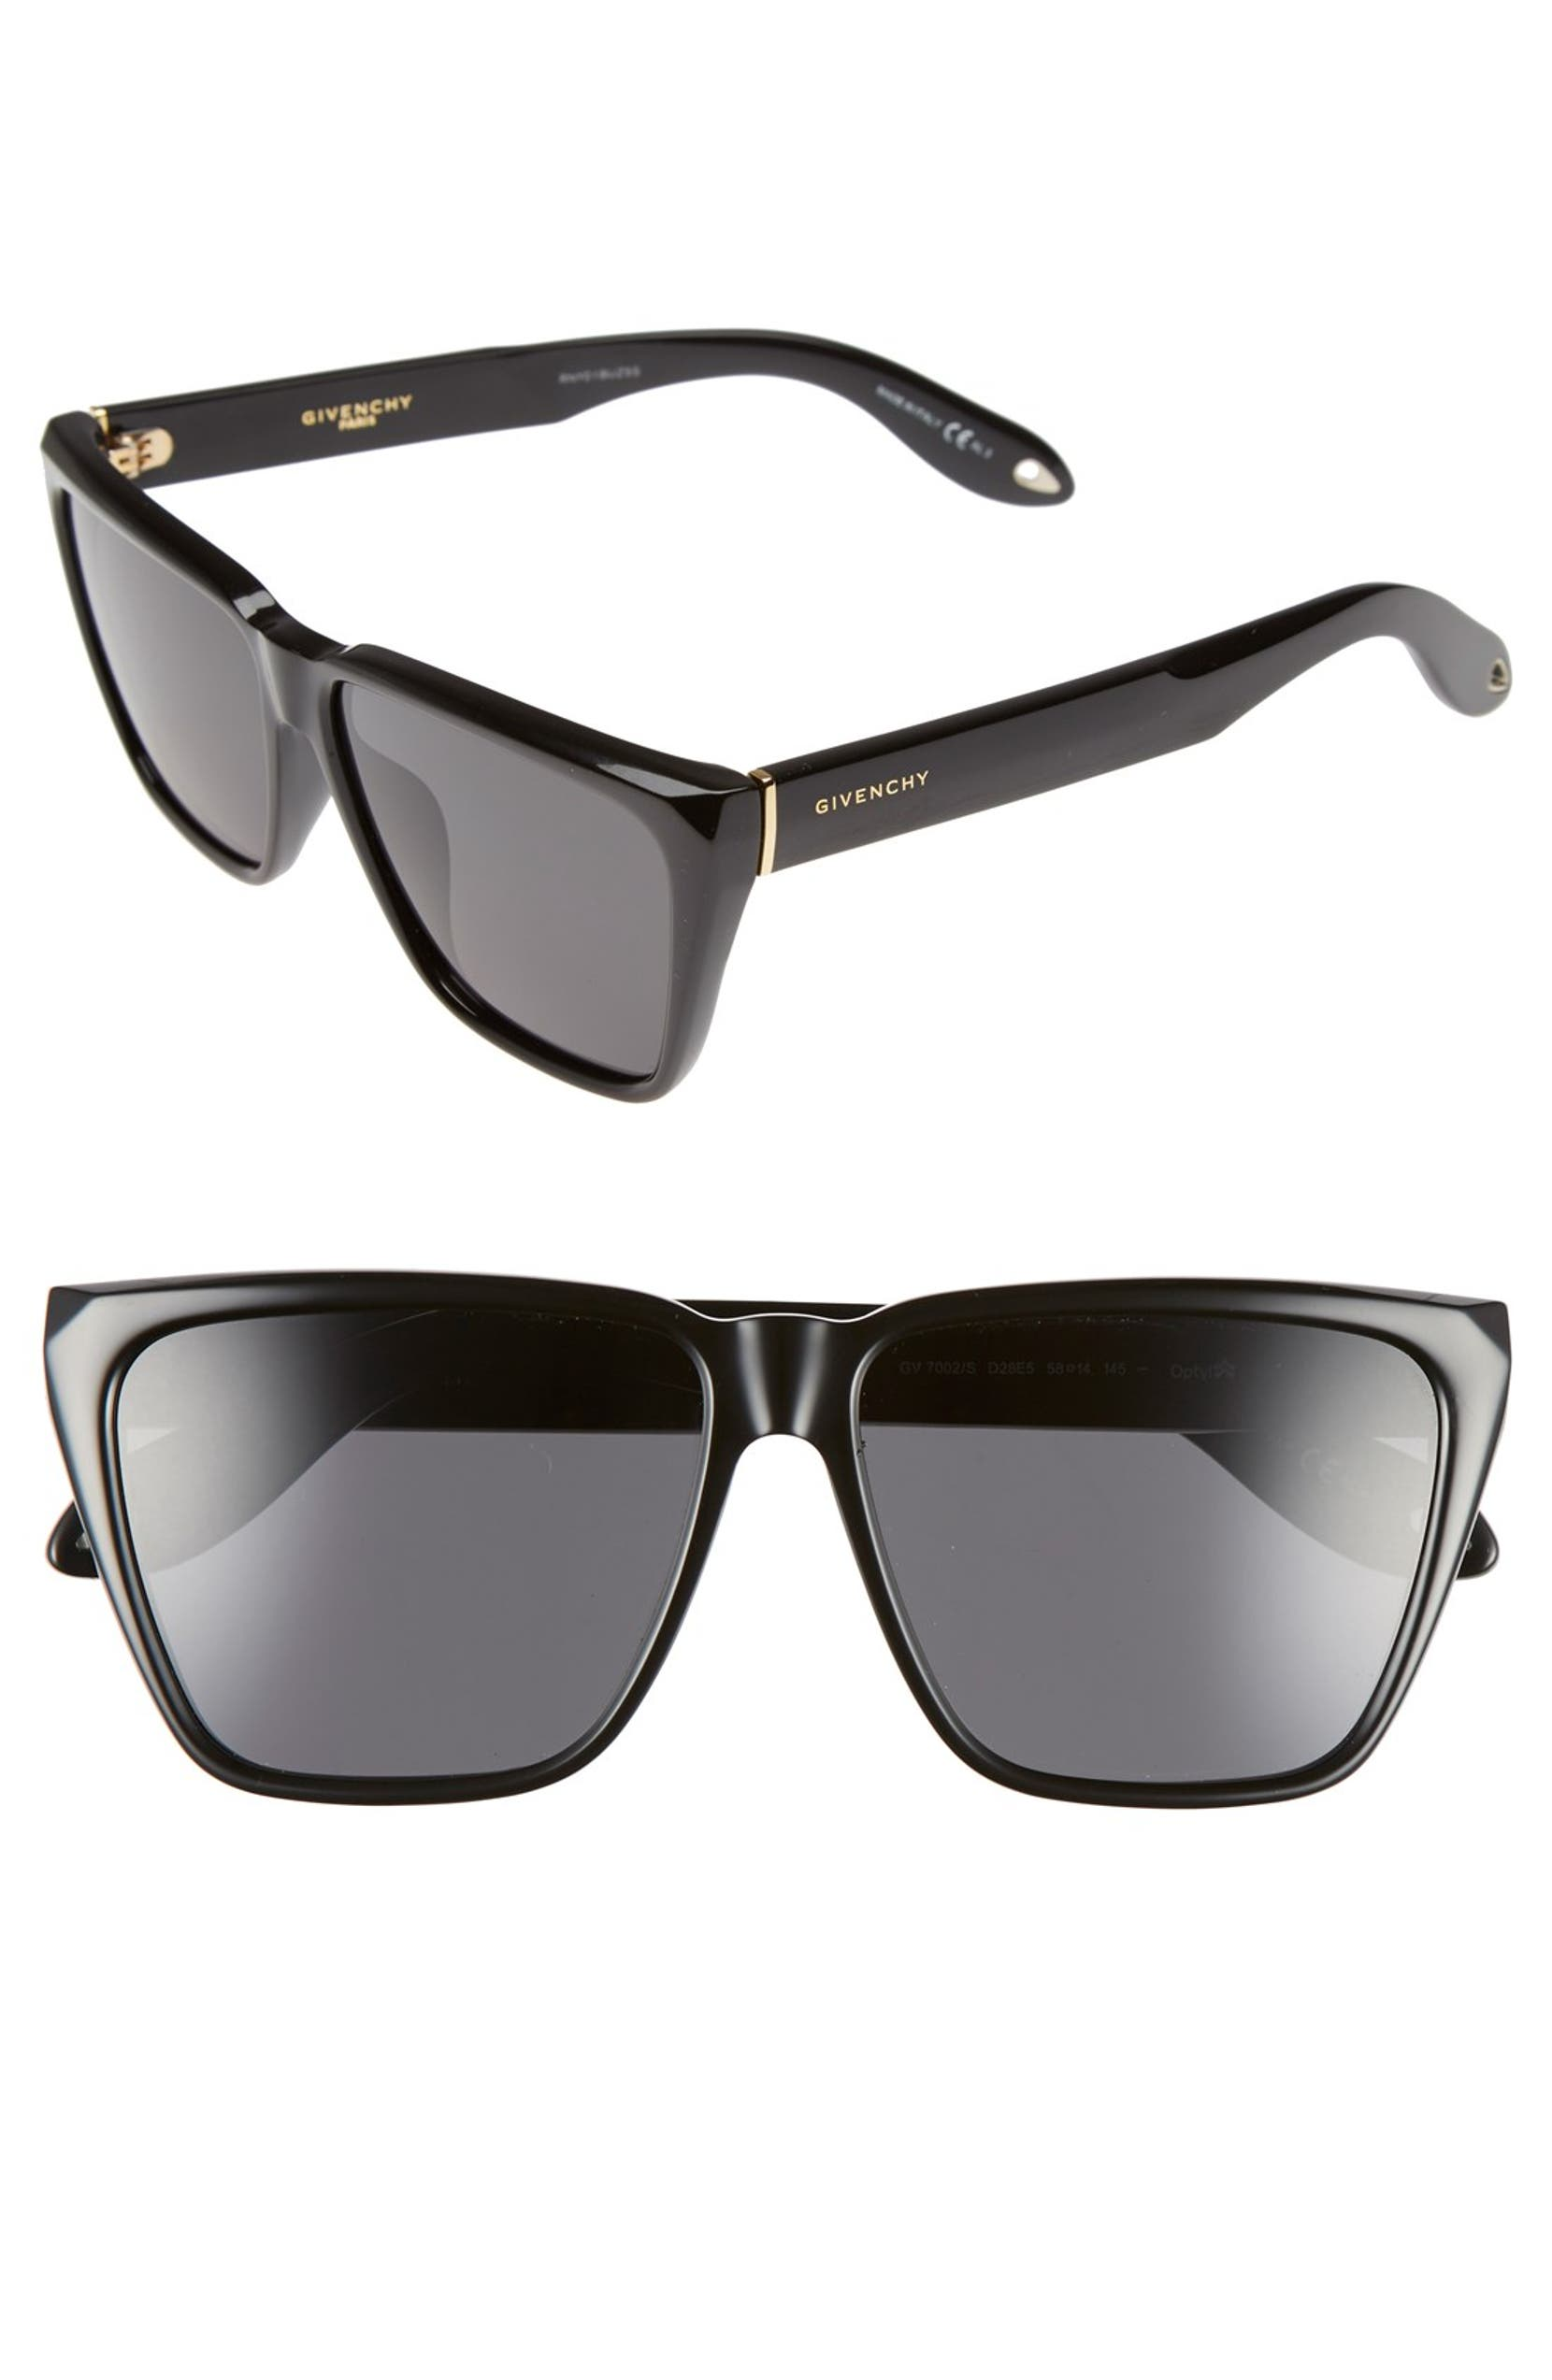 7155e21f513 Givenchy 58mm Flat Top Sunglasses